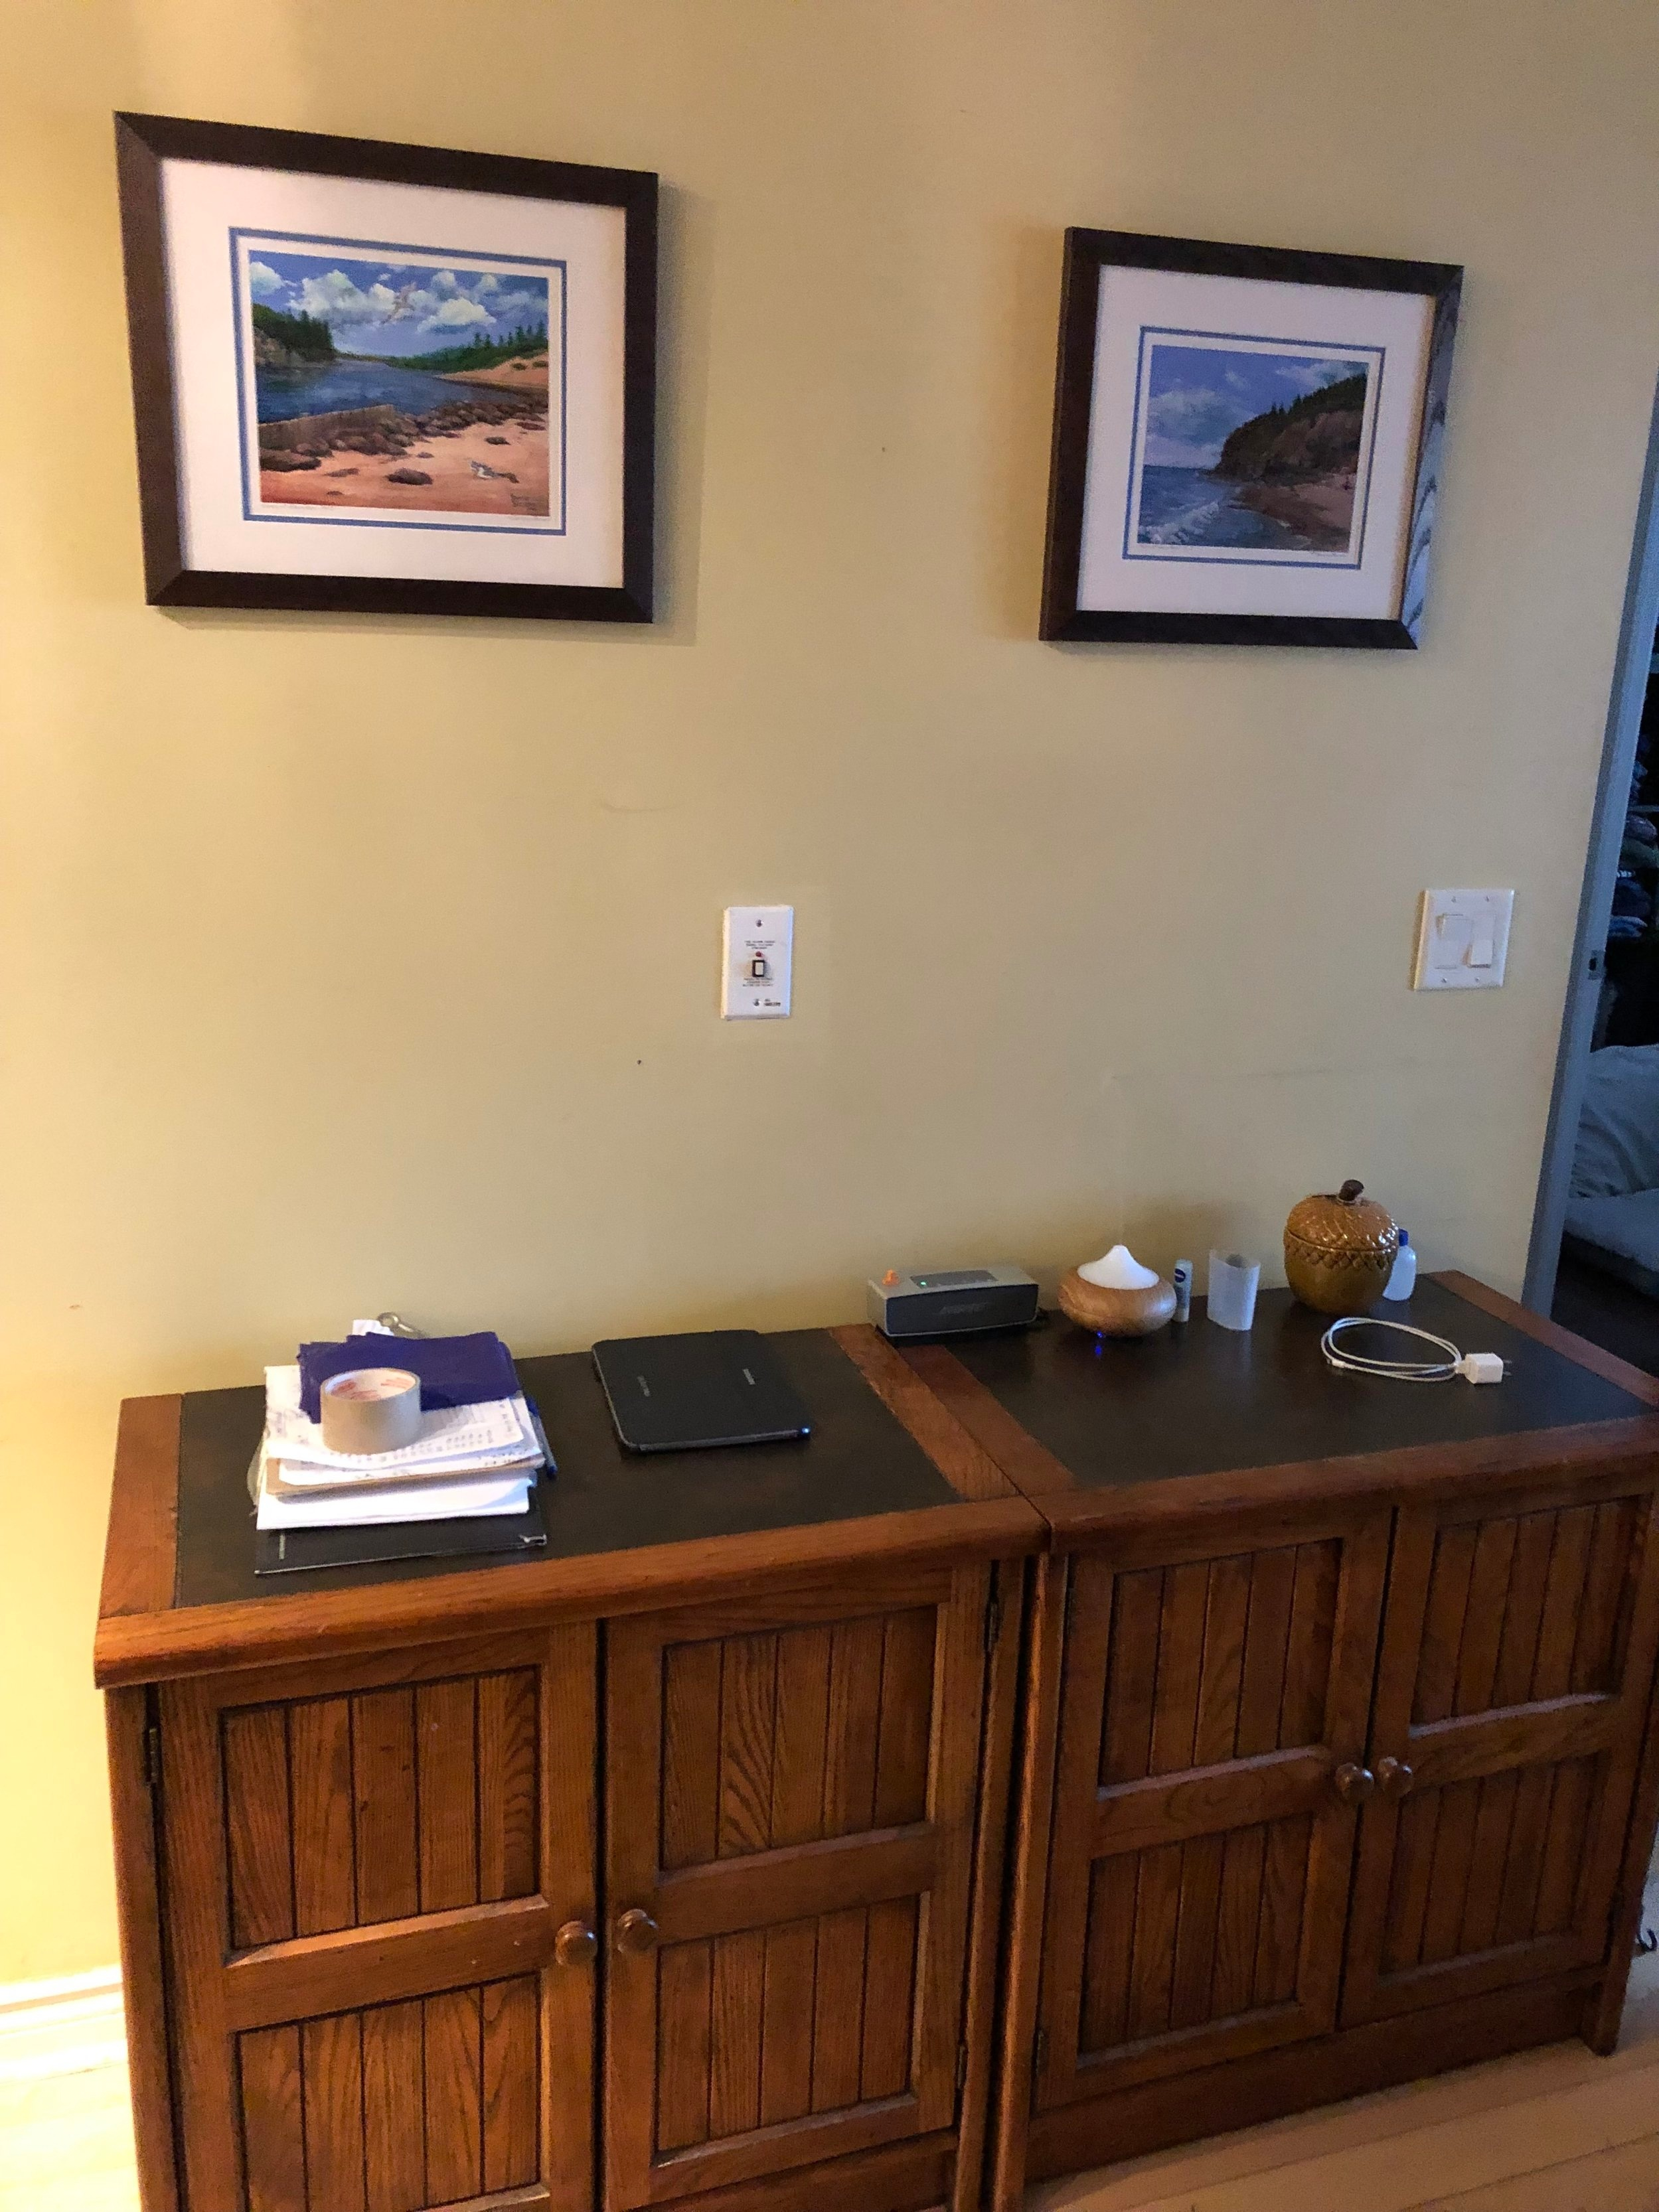 A pair of chunky wooden cabinets made this pass-through zone between the dining and living areas feel dated. Although these cabinets had lots of storage space, having a desk area to work from home was more important to the homeowners.